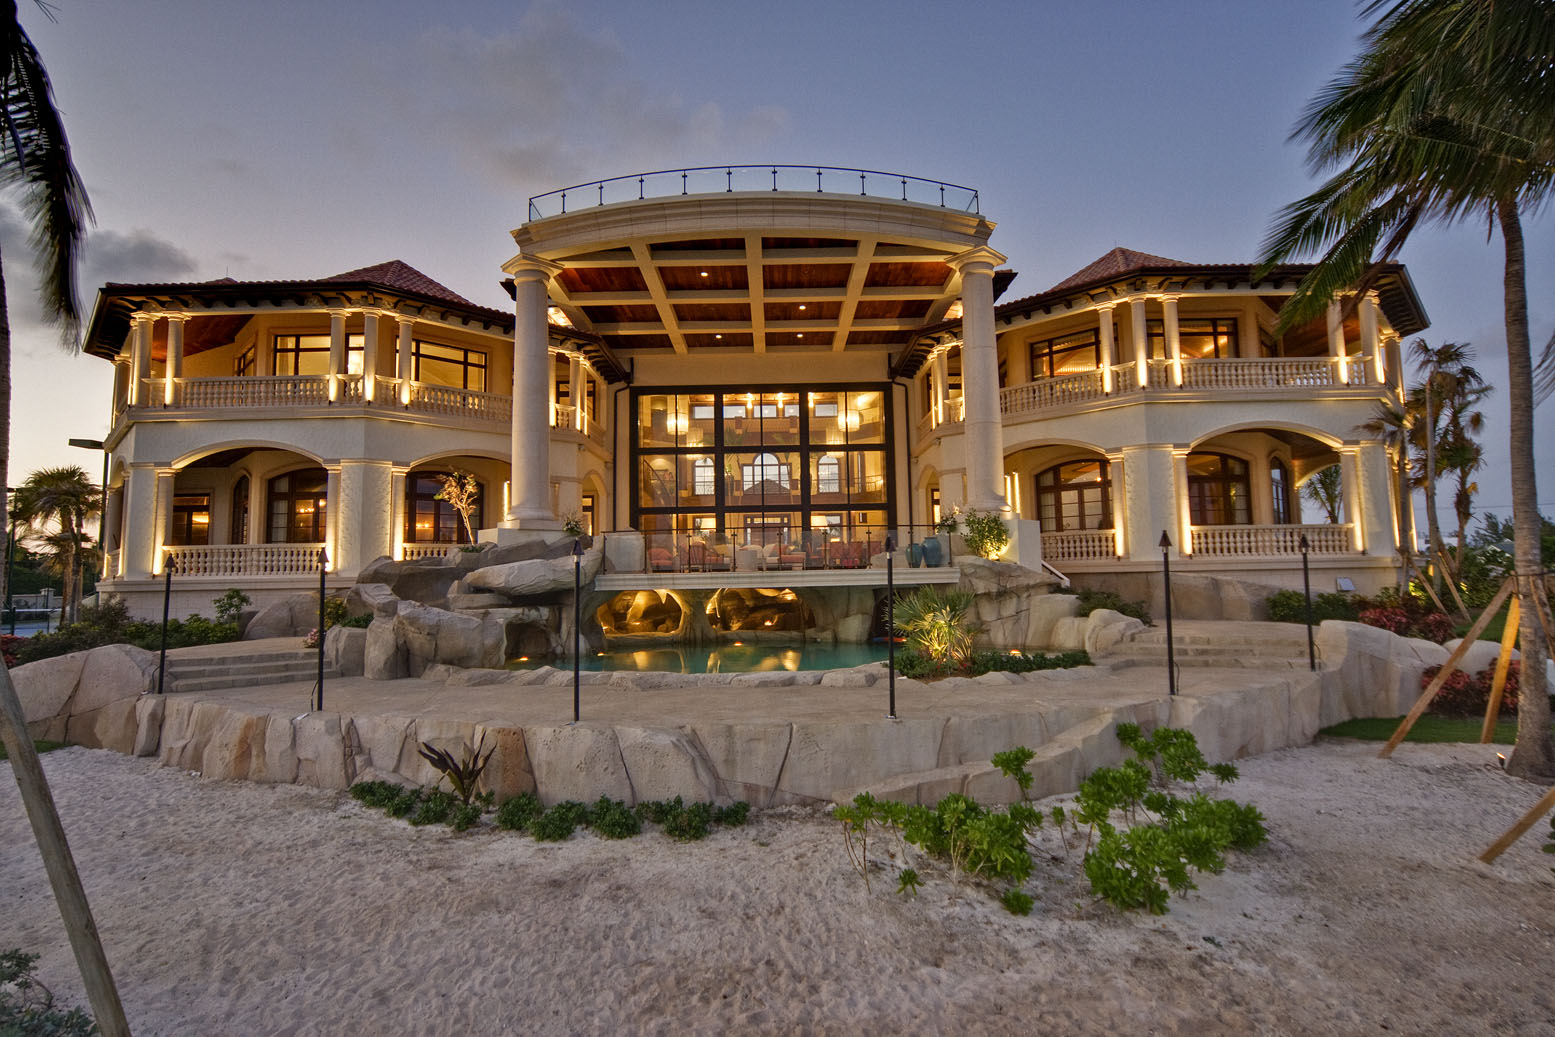 Home Luxury Lifestyle: Cayman Islands Mega-Mansion